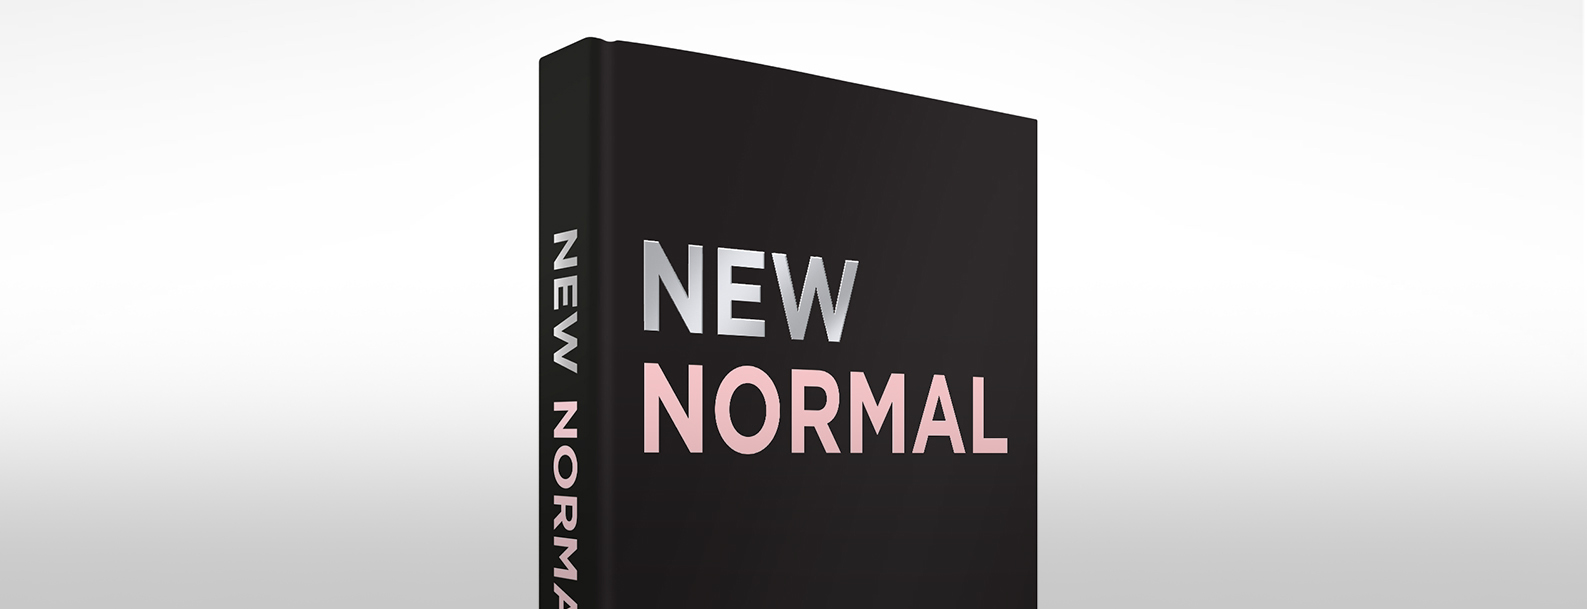 For sale! TREND BOOK 2019/20 - NEW NORMAL